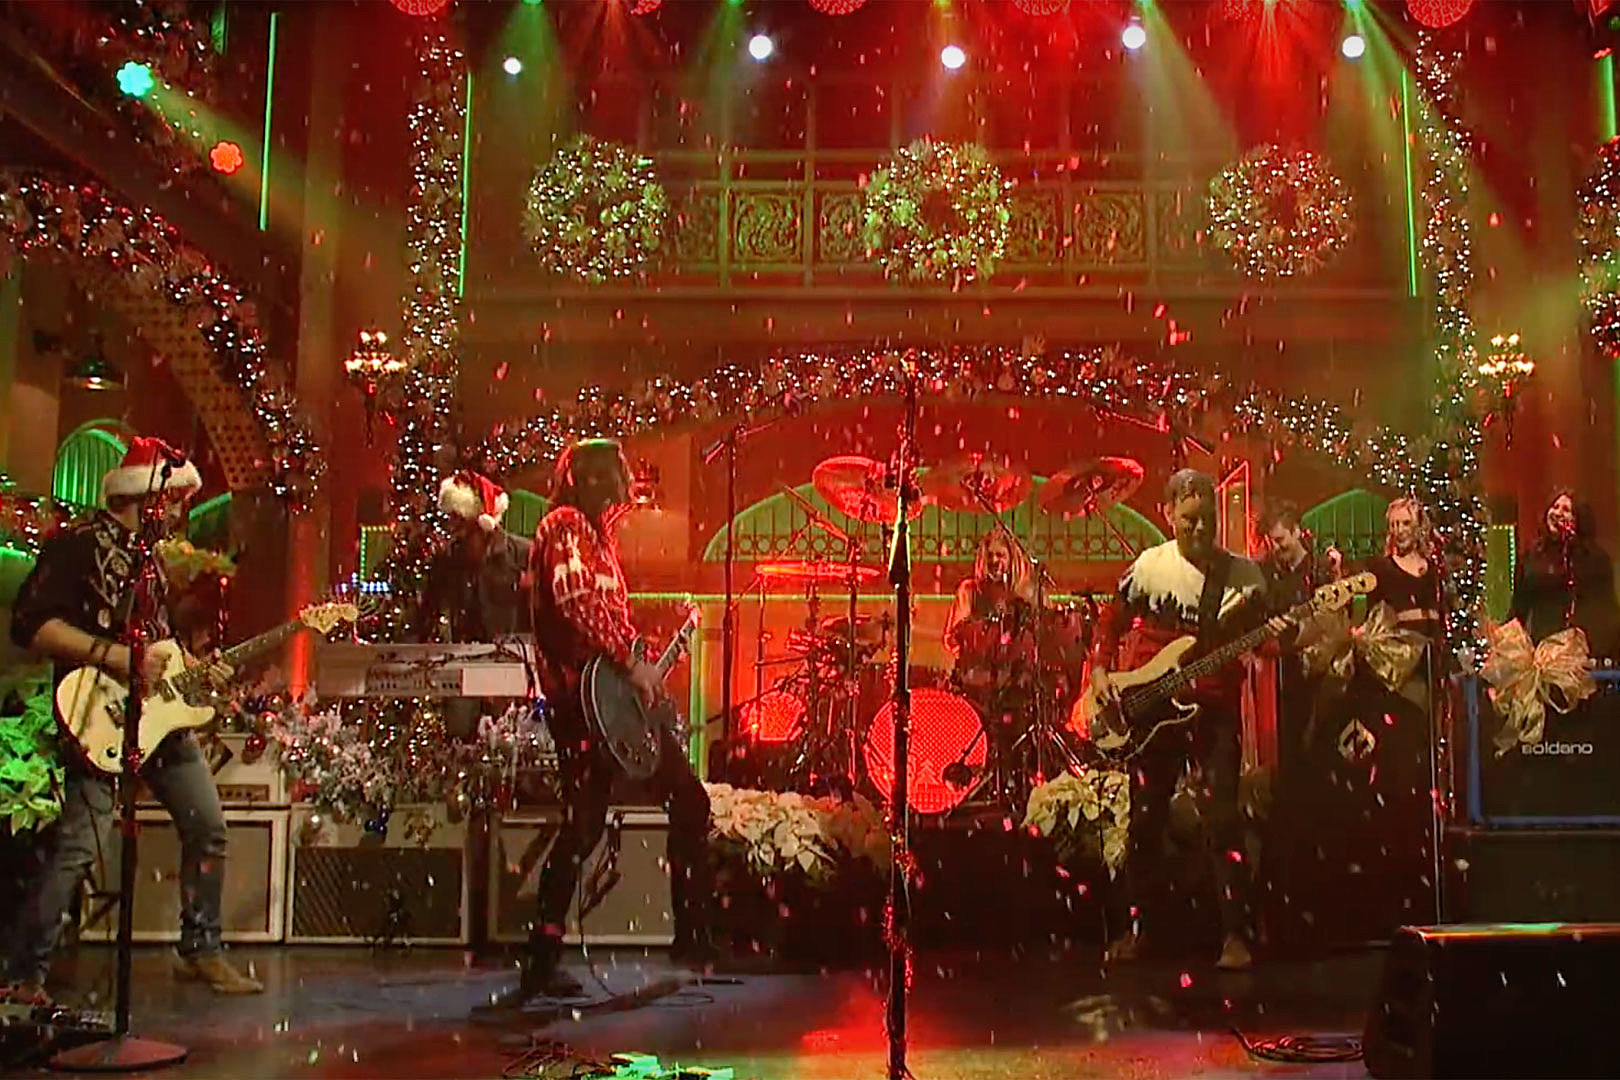 Foo Fighters Celebrate 'Everlong' Christmas, Rock 'The Sky Is a Neighborhood' on 'Saturday Night Live'